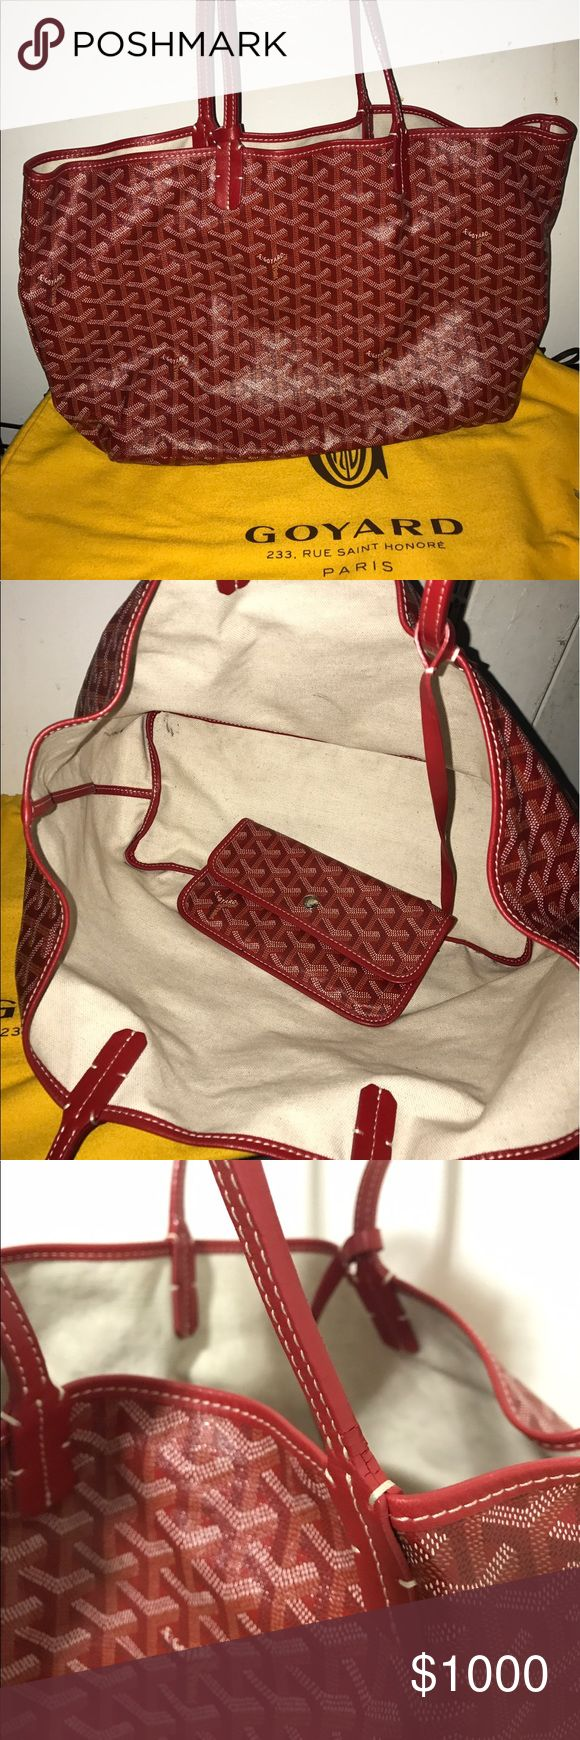 Goyard St. Louis PM in Red I've had this bag for about 6 years now. It's still in really good shape. I'd say 8/10. I take really good care of all my bags. Goyard has amazing quality. There is sign of wear on handles which is totally normal for this bag, and any tote style bags. I purchased this bag at the Goyard in Beverly Hills. It's 100% authentic. I still also have the receipts, tags, dust bag, etc. I'm asking $800 email me at Anawinbaby@yahoo.com for more info or questions. I'll sell…